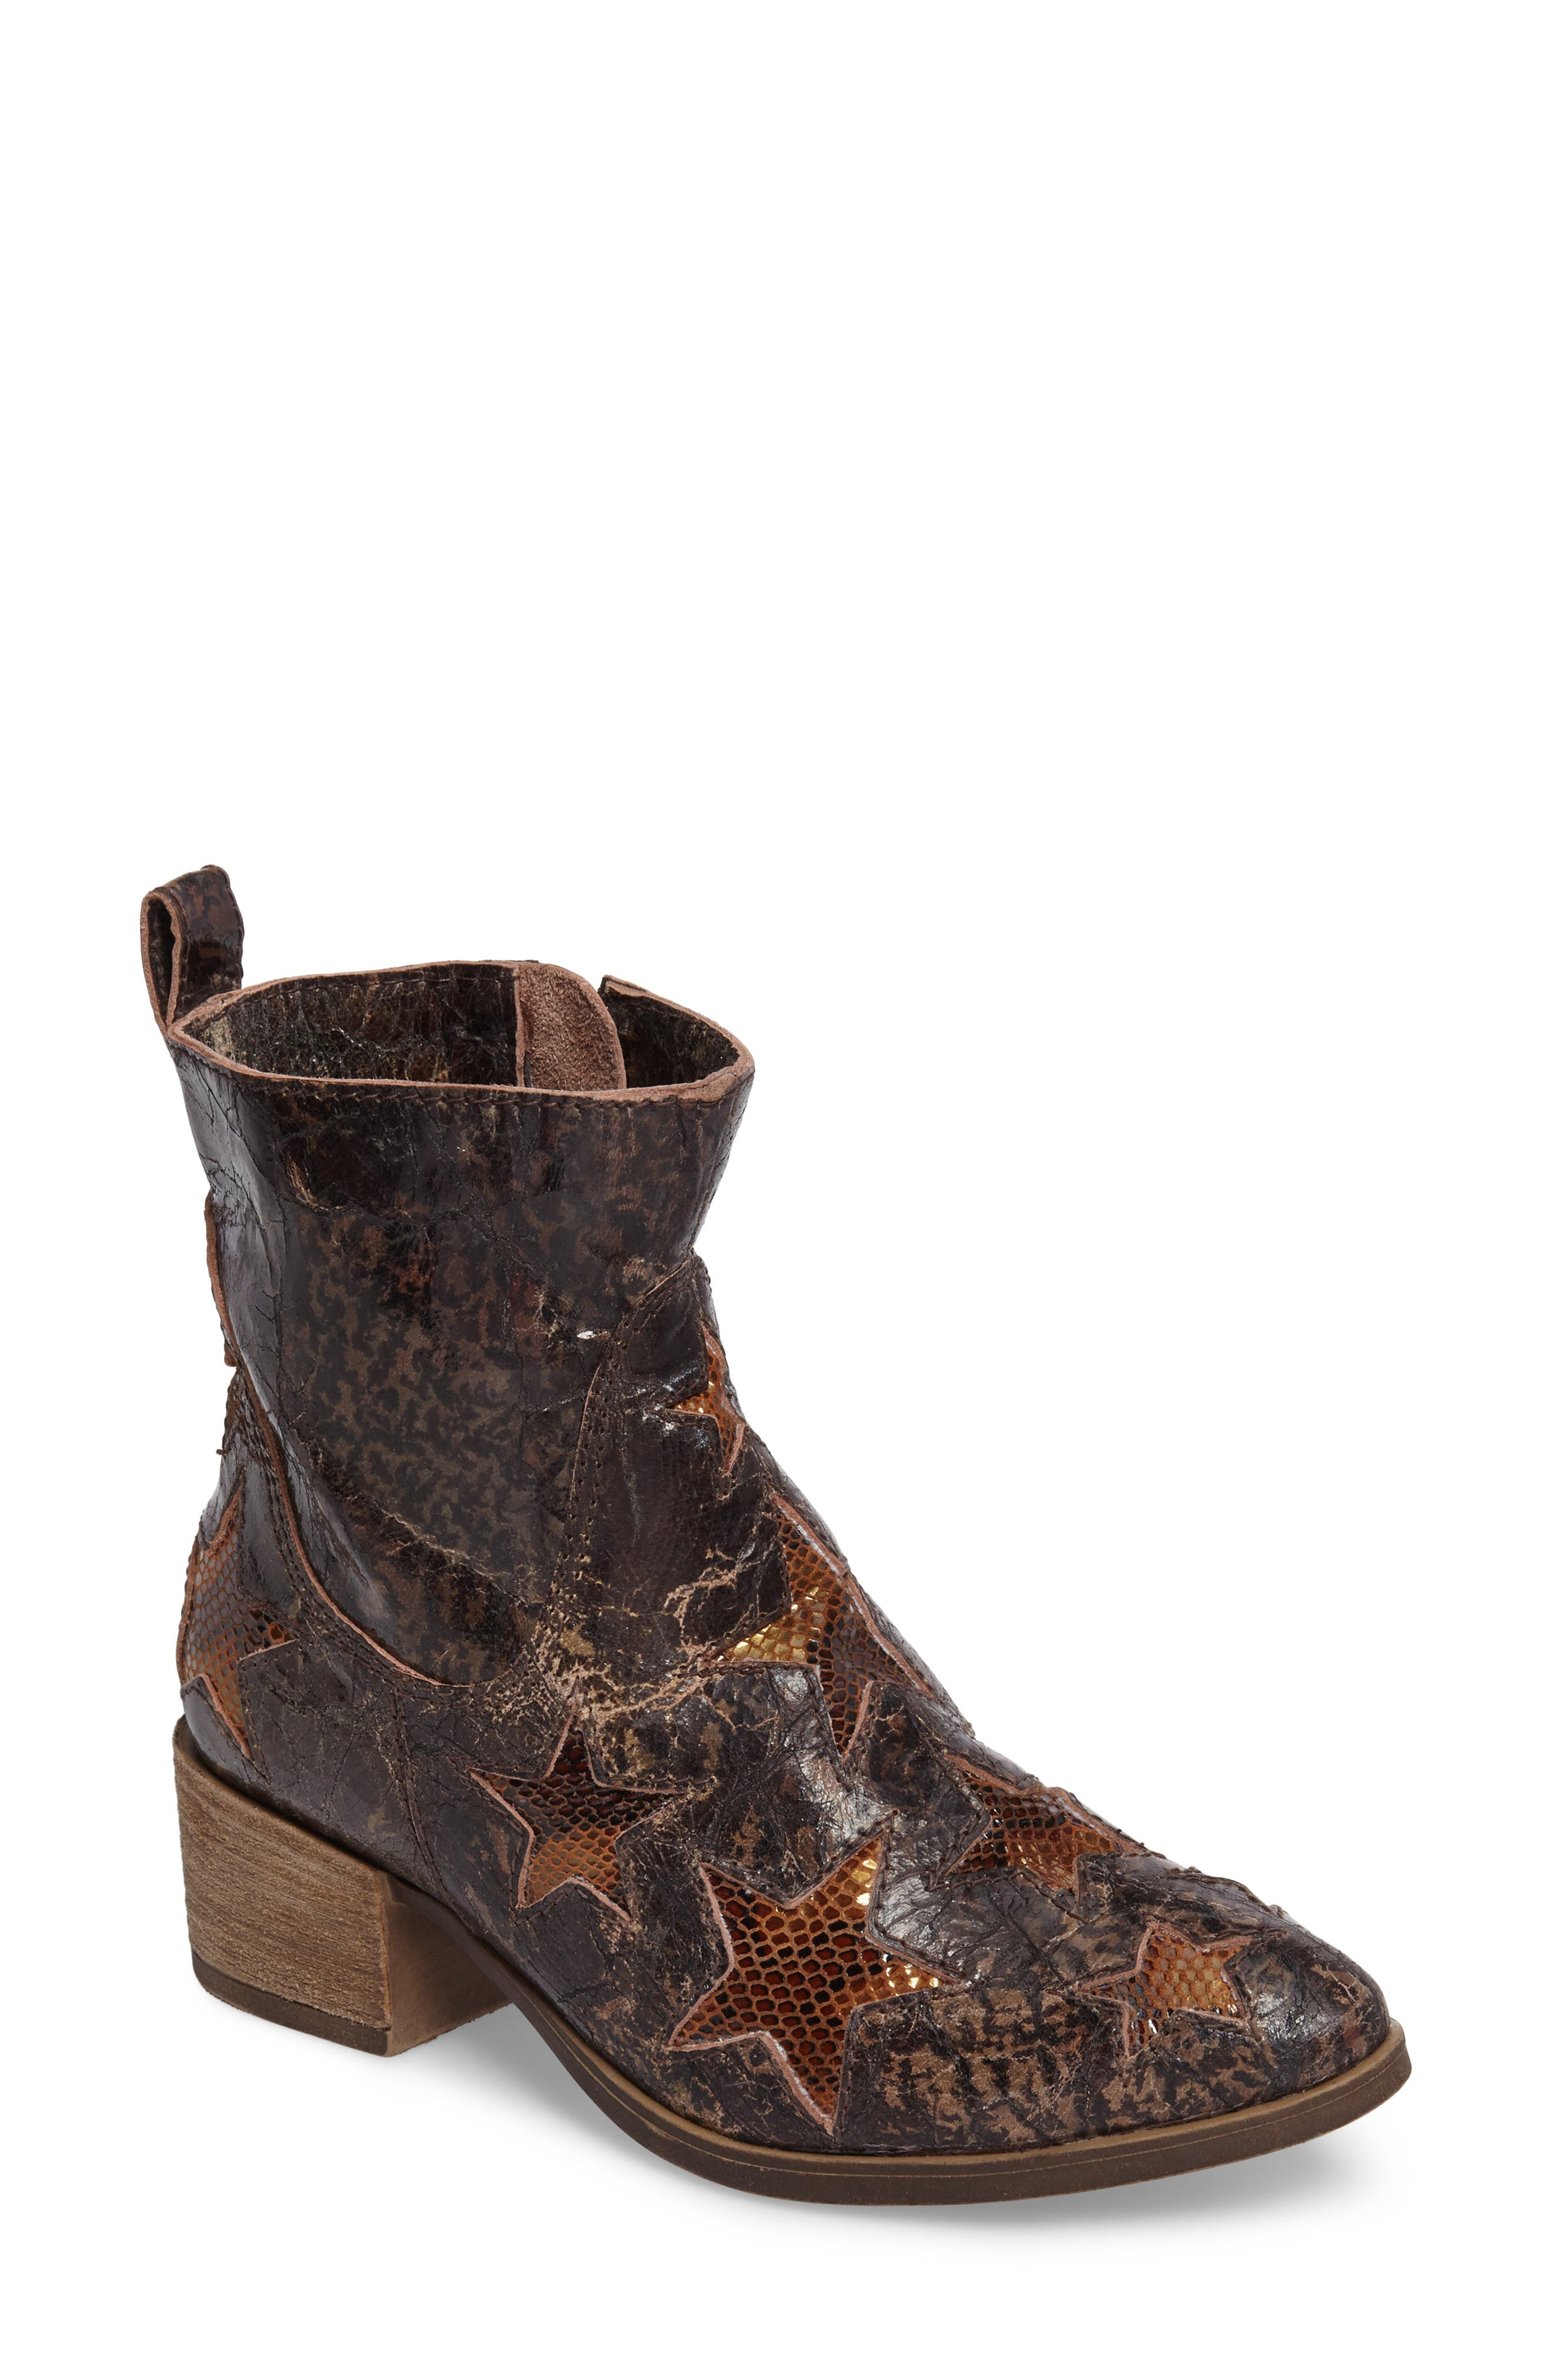 Crinkle Finish Star Bootie,                         Main,                         color, MID BROWN LEATHER